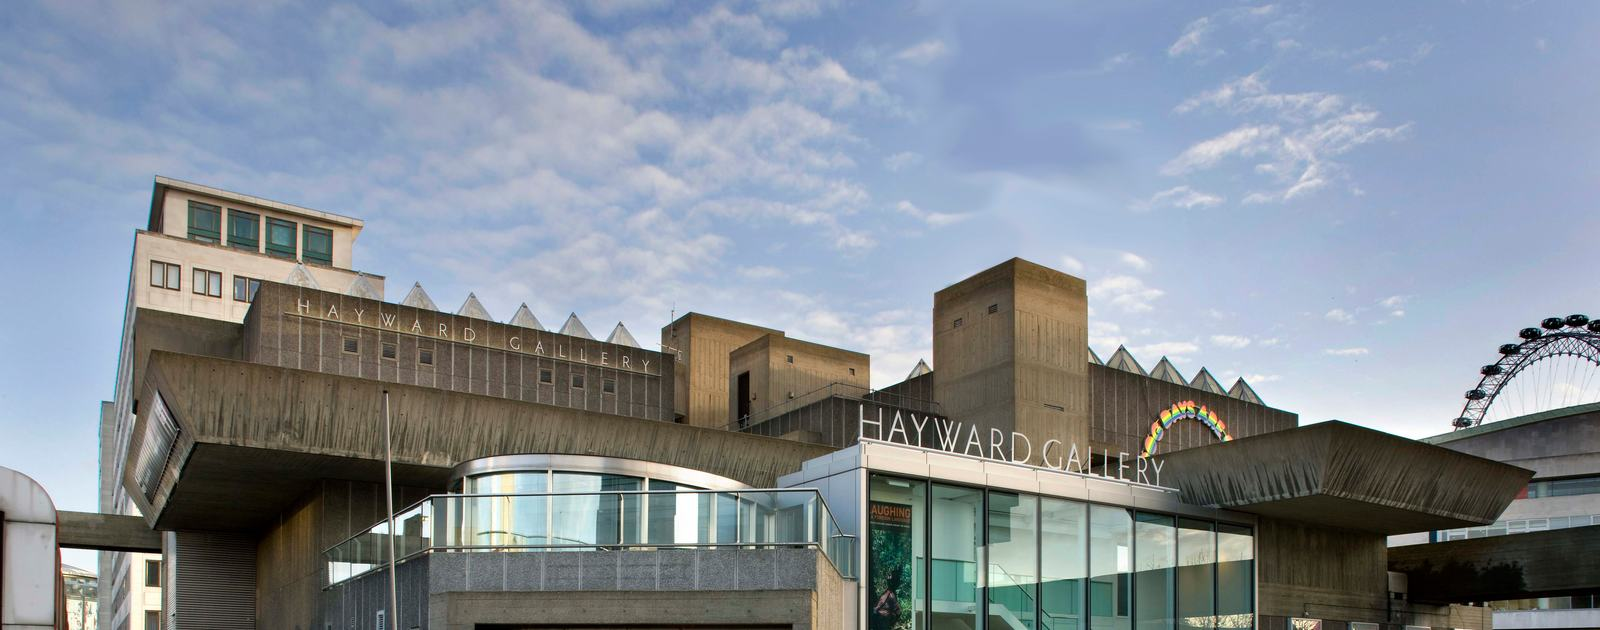 Hayward Gallery.jpg